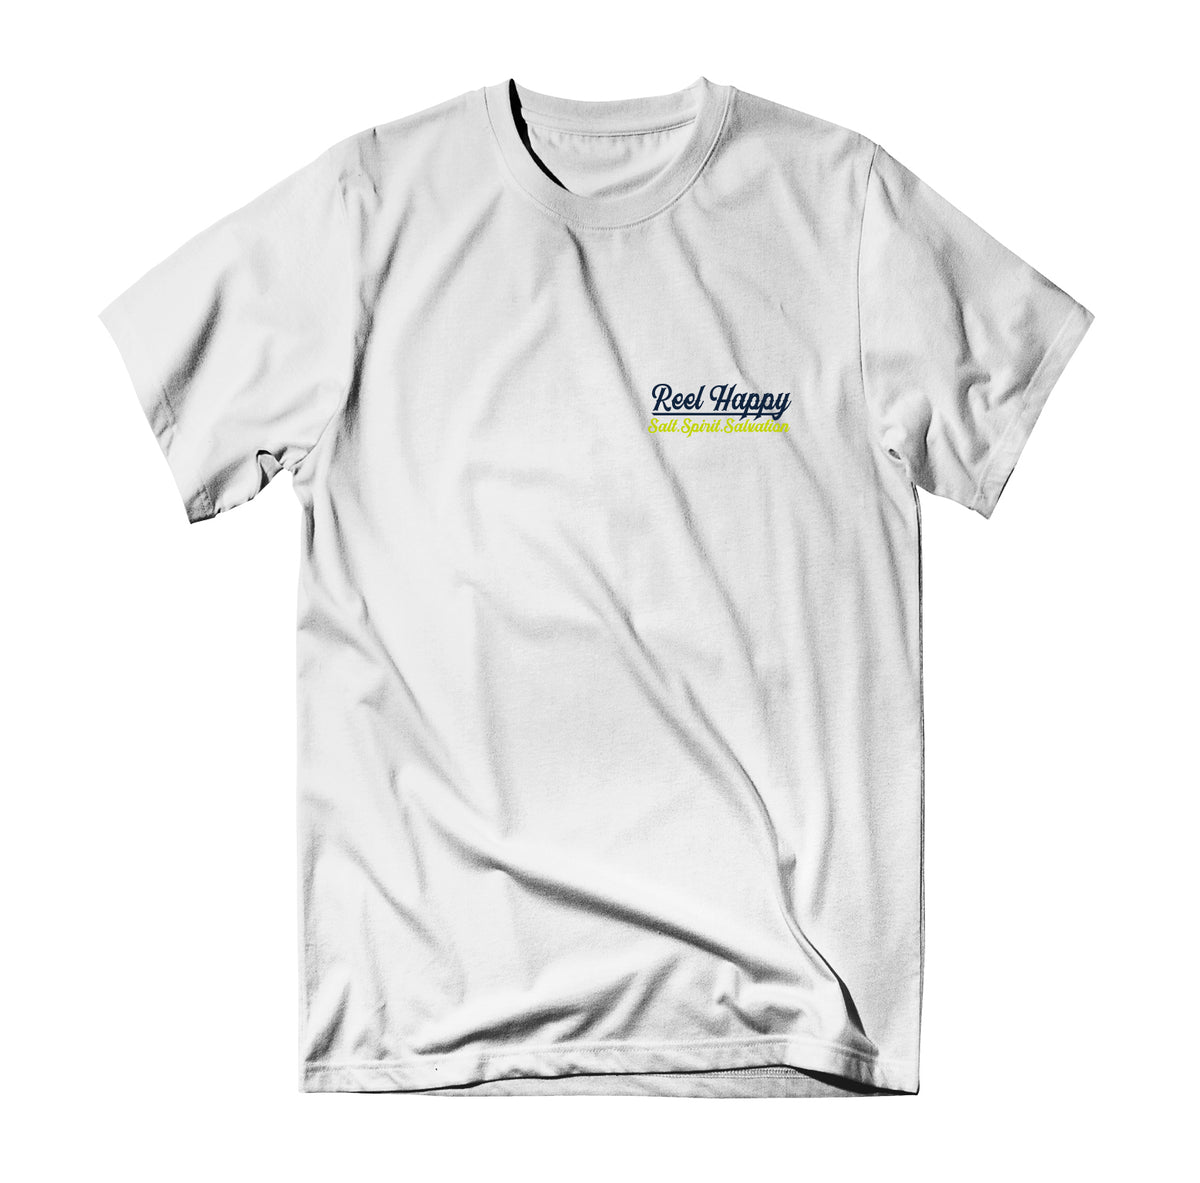 Point Guard T-Shirt - White - Reel Happy Co